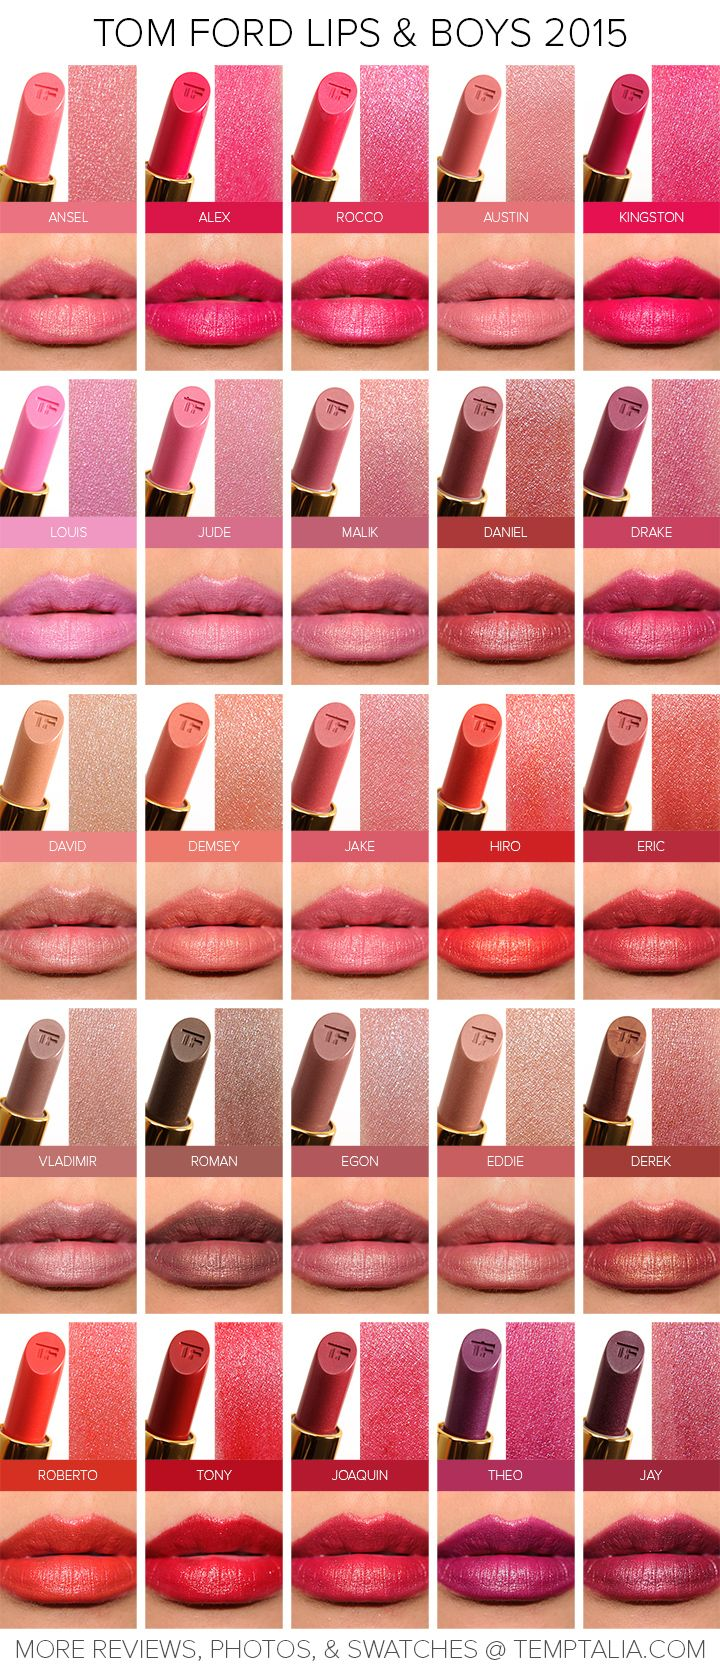 Tom Ford Lips & Boys Collection Tom Ford Lips & Boys Collection ($35.00 for 0.07 oz.) is a set of 25 new and 25 returning shades